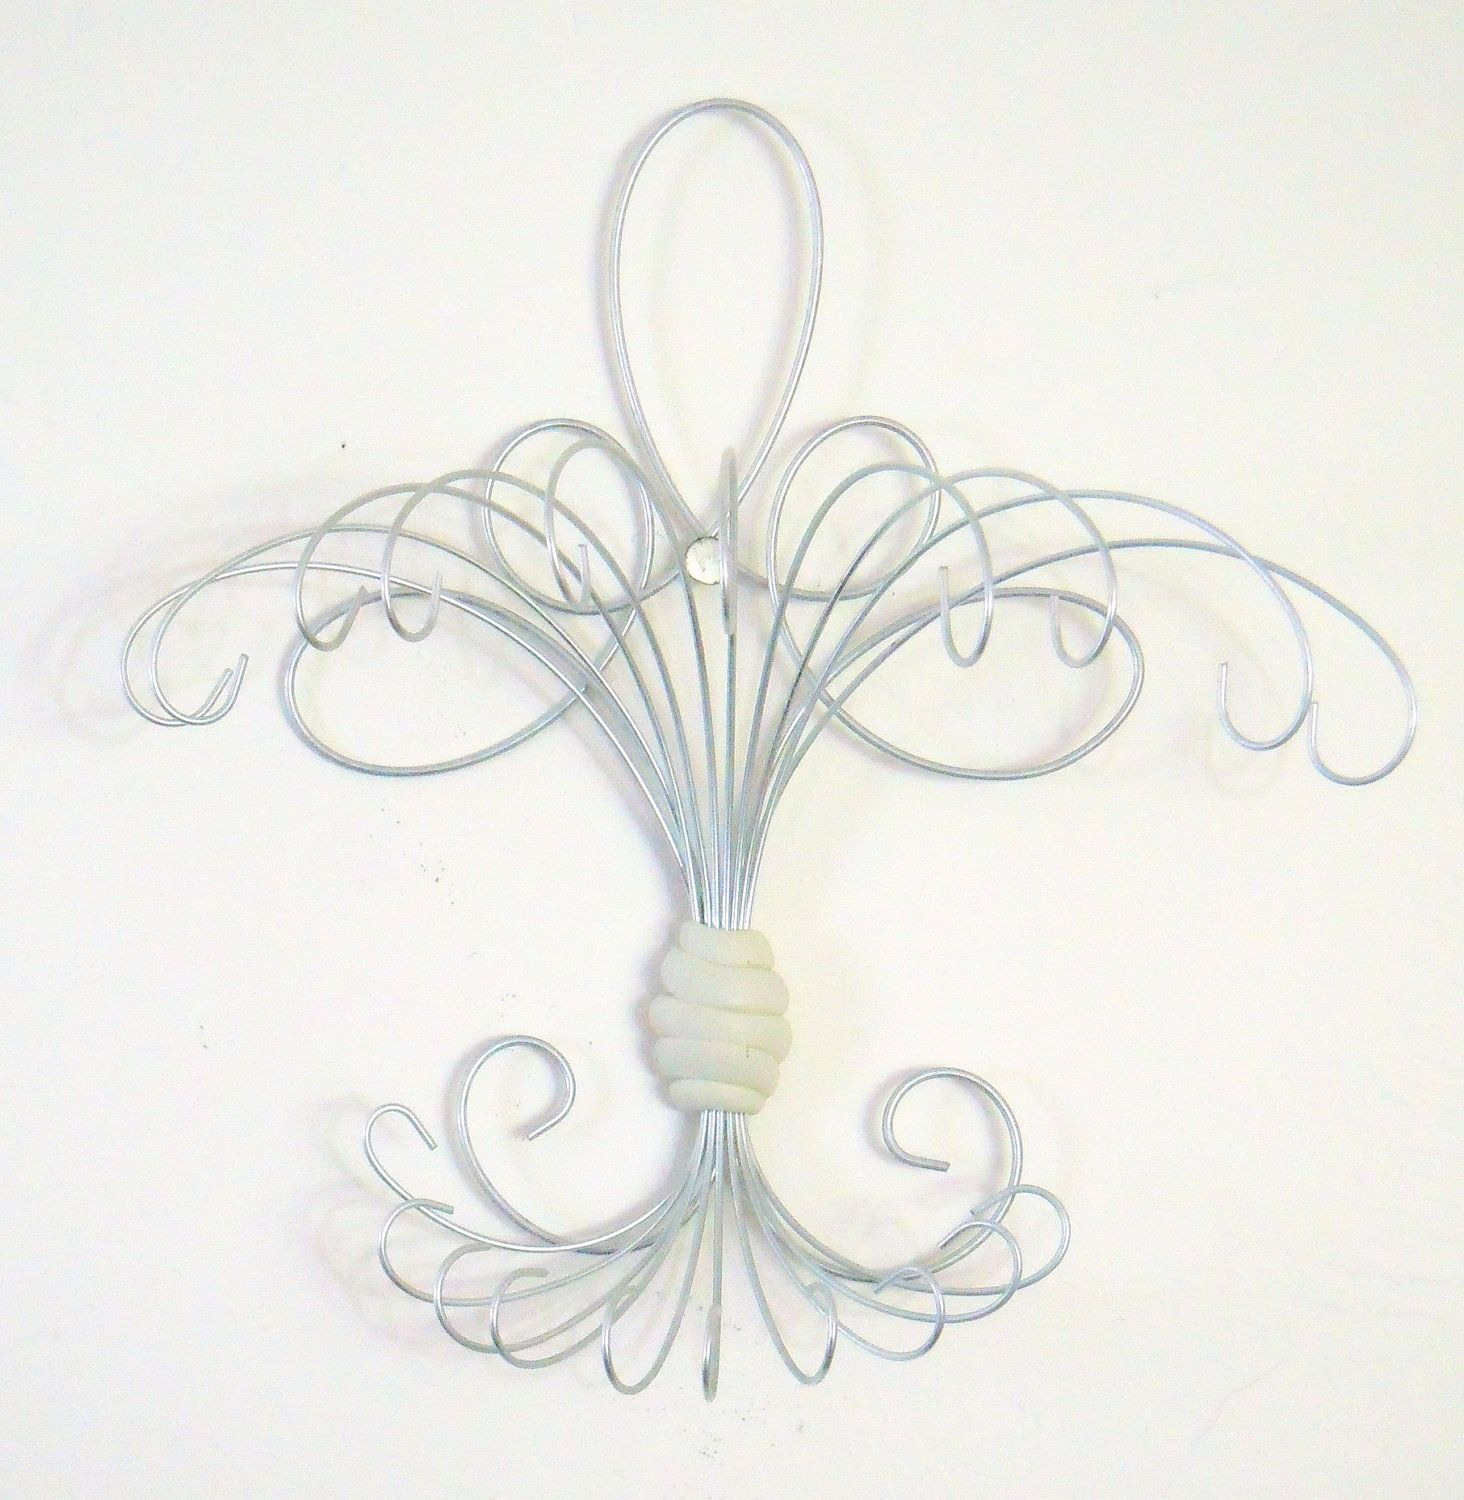 Jewelry Hanger Vertical Loop De Design 25 Wire Wrapped Wiring A Light Fixture On